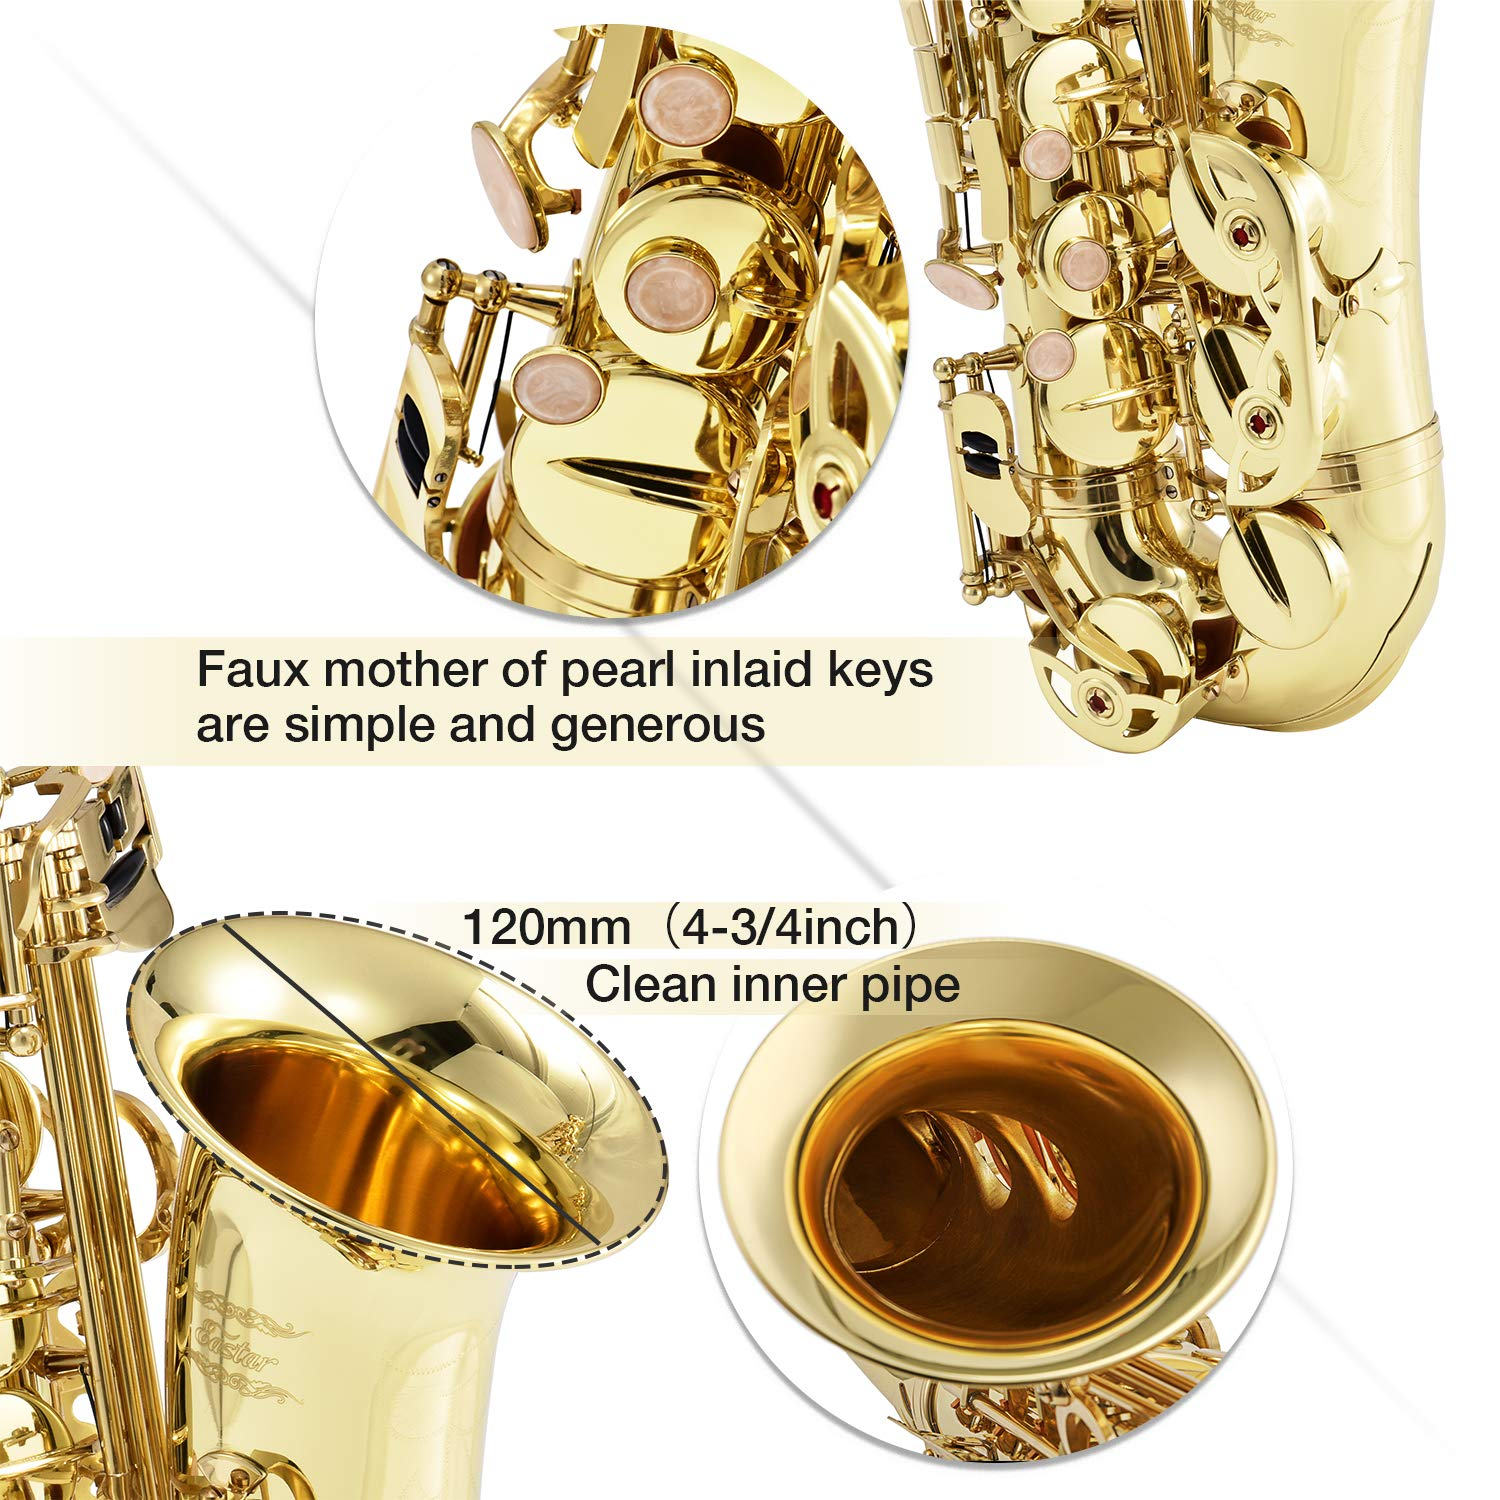 Eastar AS-Ⅱ Student Alto Saxophone E Flat Gold Lacquer Alto Sax Full Kit With Carrying Sax Case Mouthpiece Straps Reeds Stand Cork Grease by Eastar (Image #5)